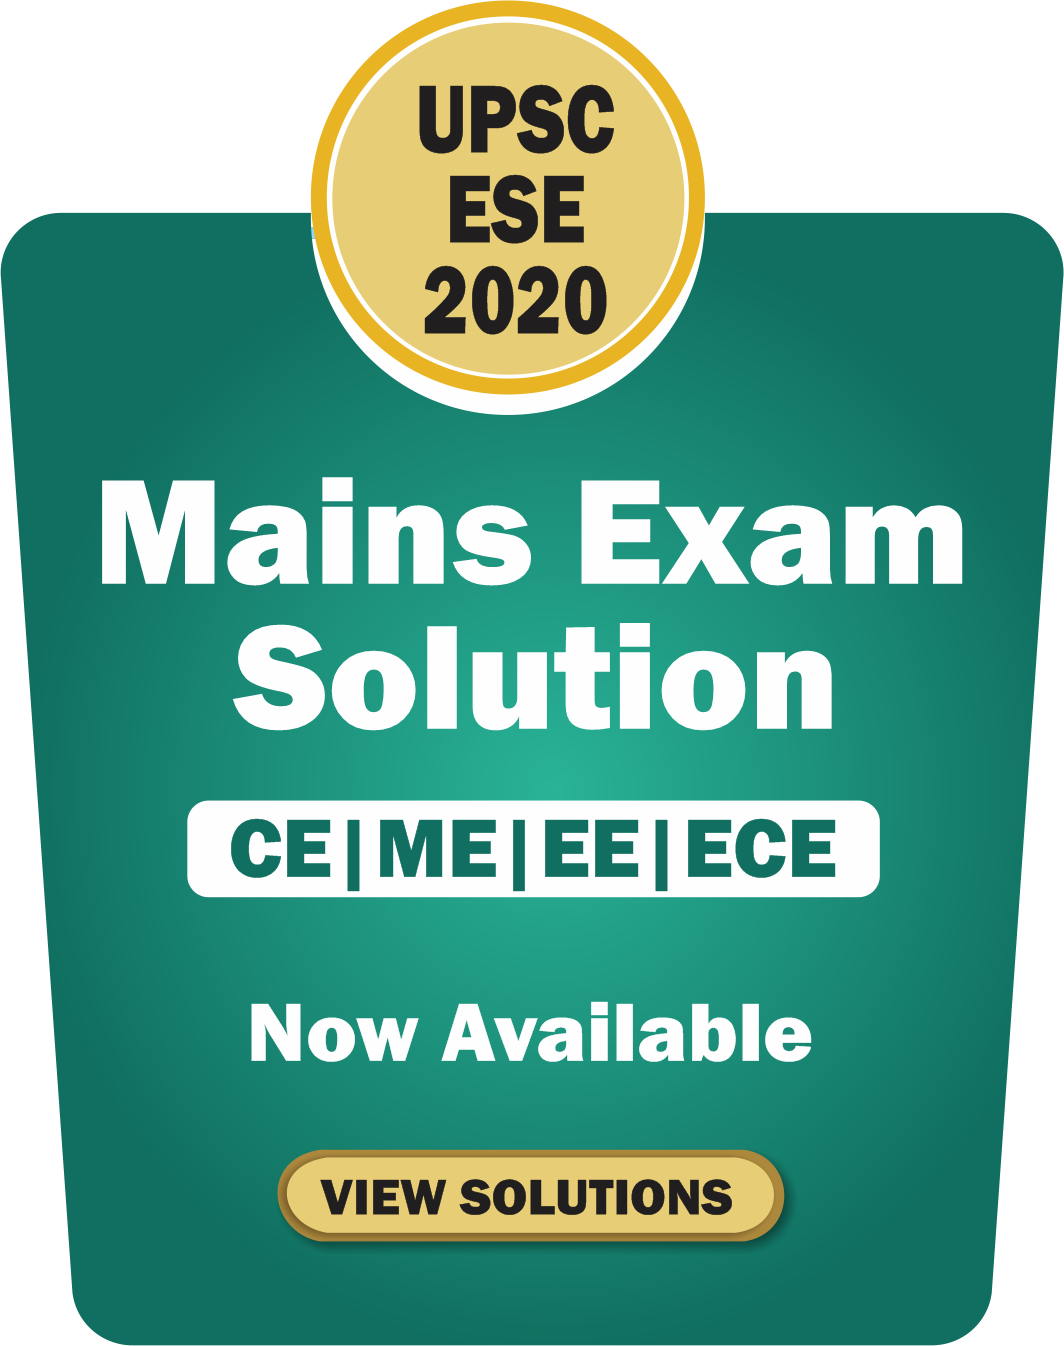 ESE 2020 Mains Exam Detailed Solution with Question Paper